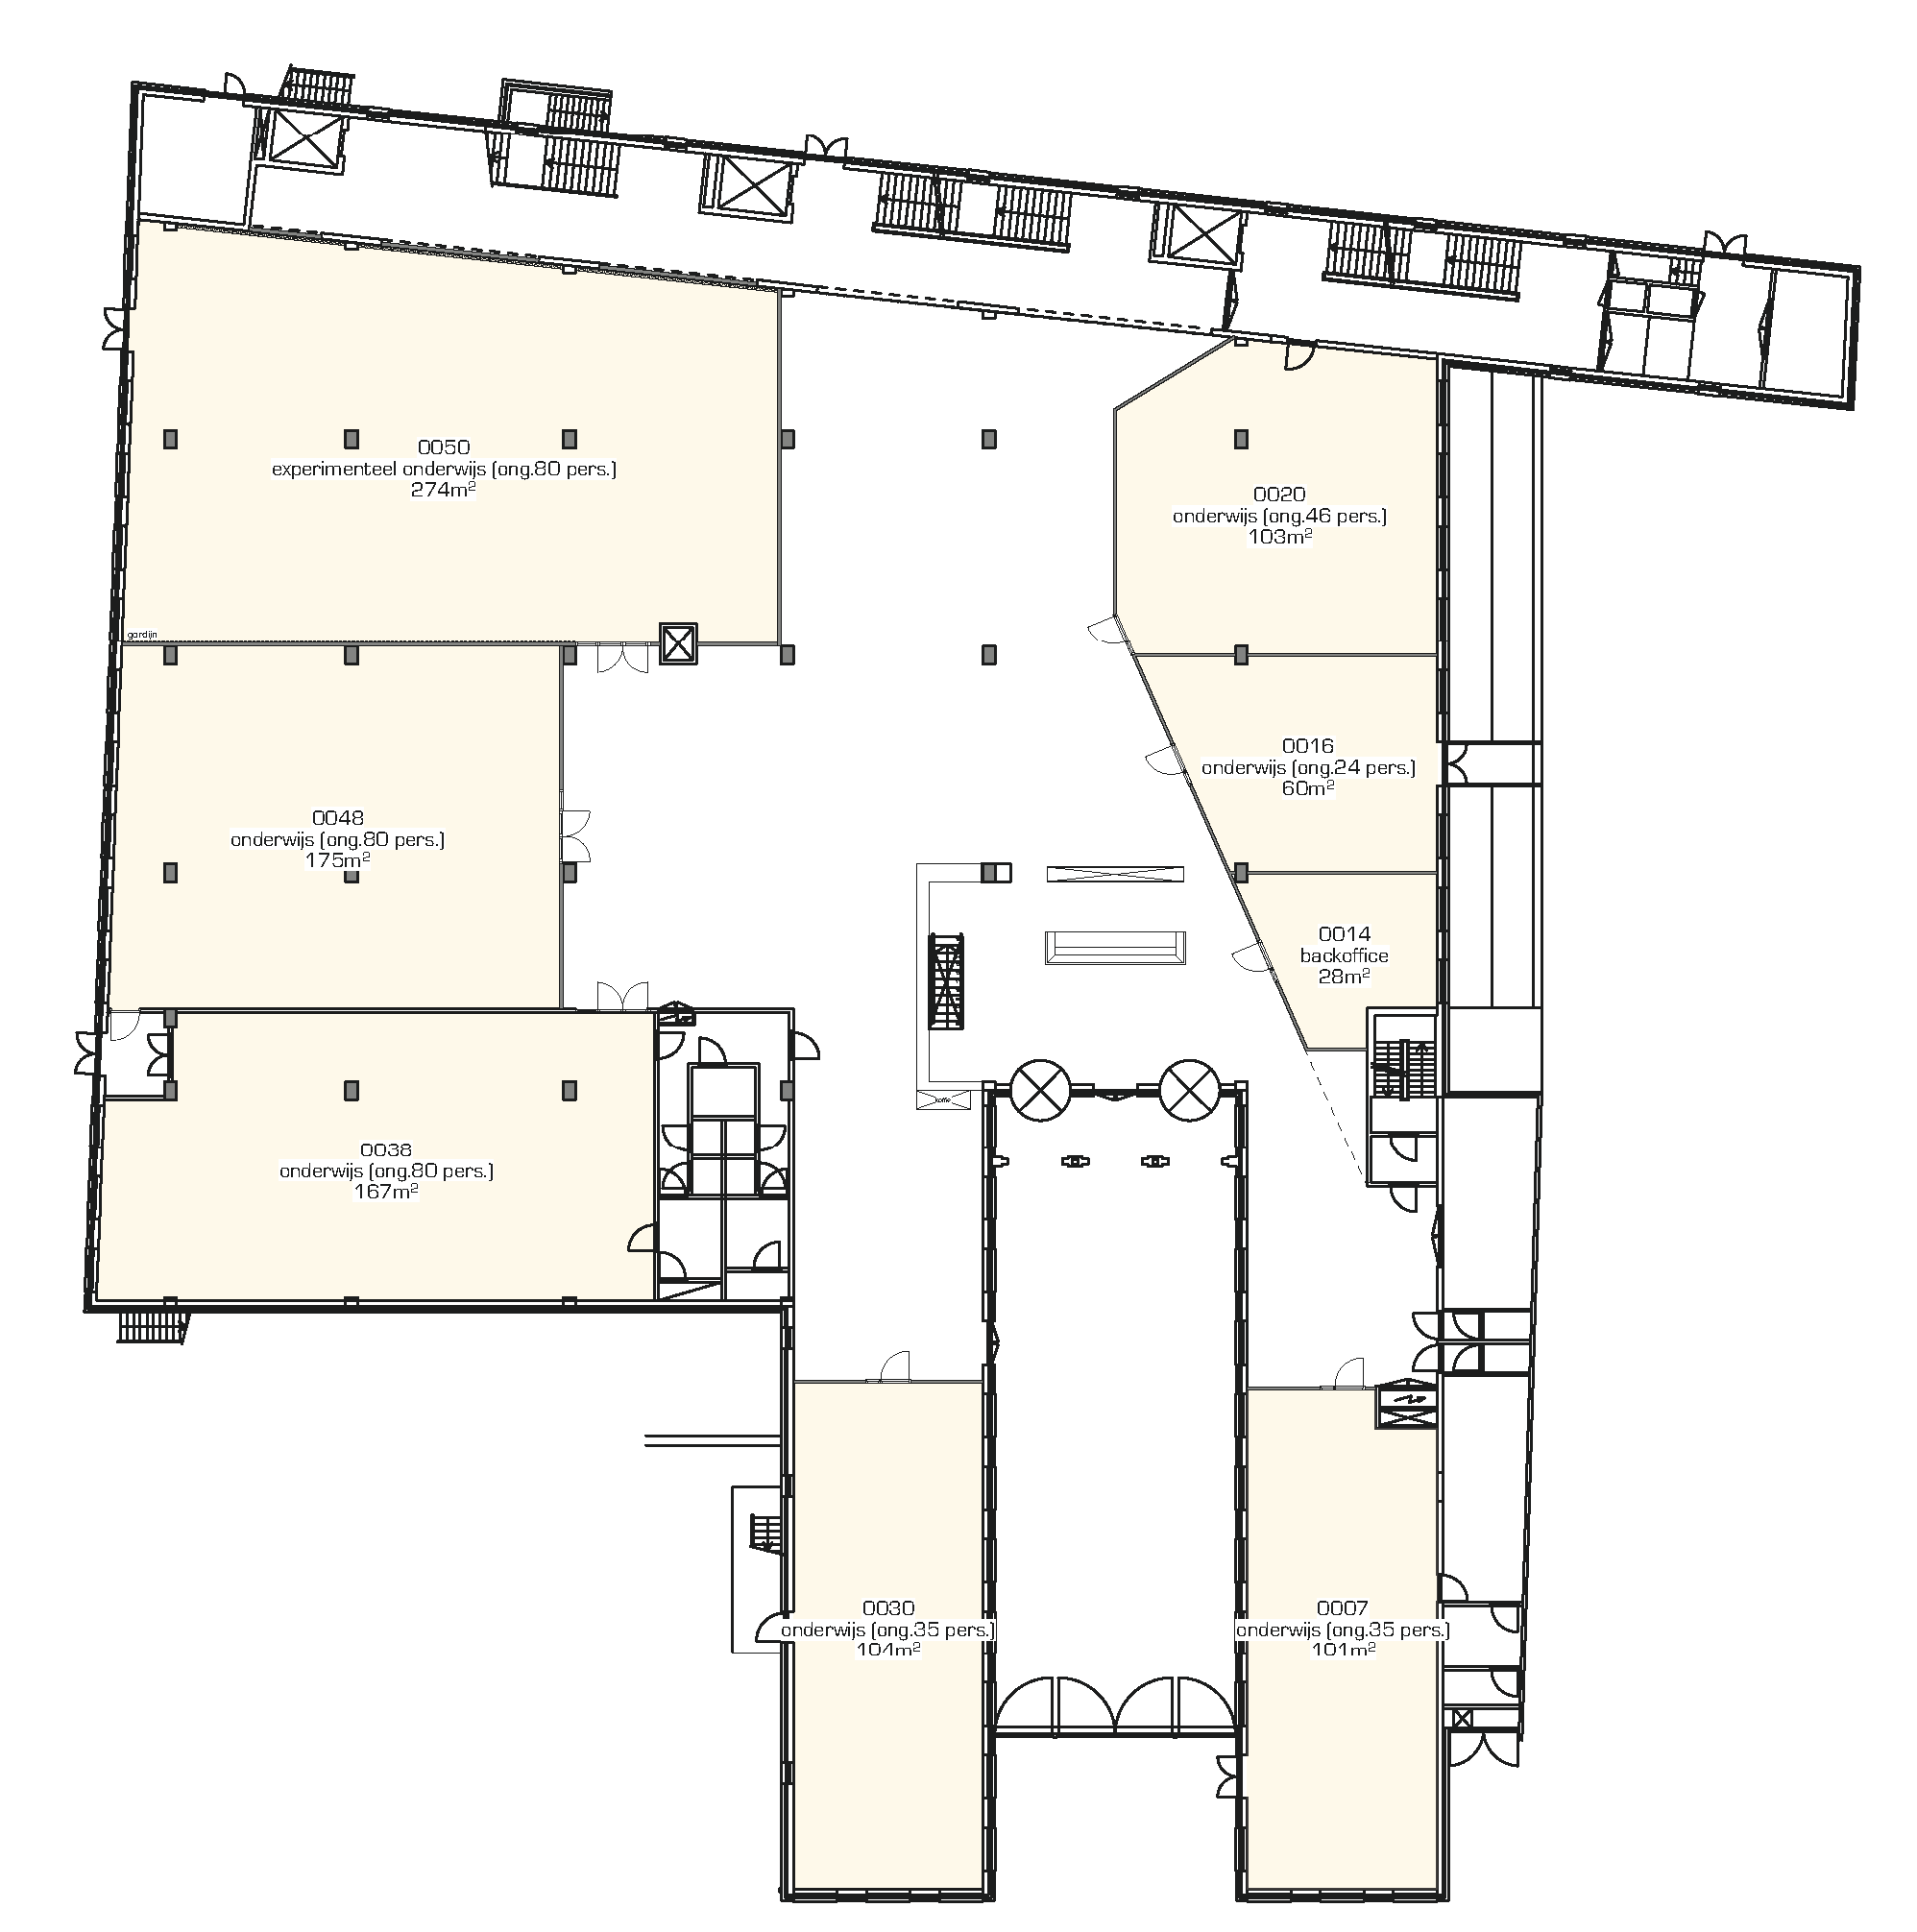 Floor plan of the ground floor with additional classrooms